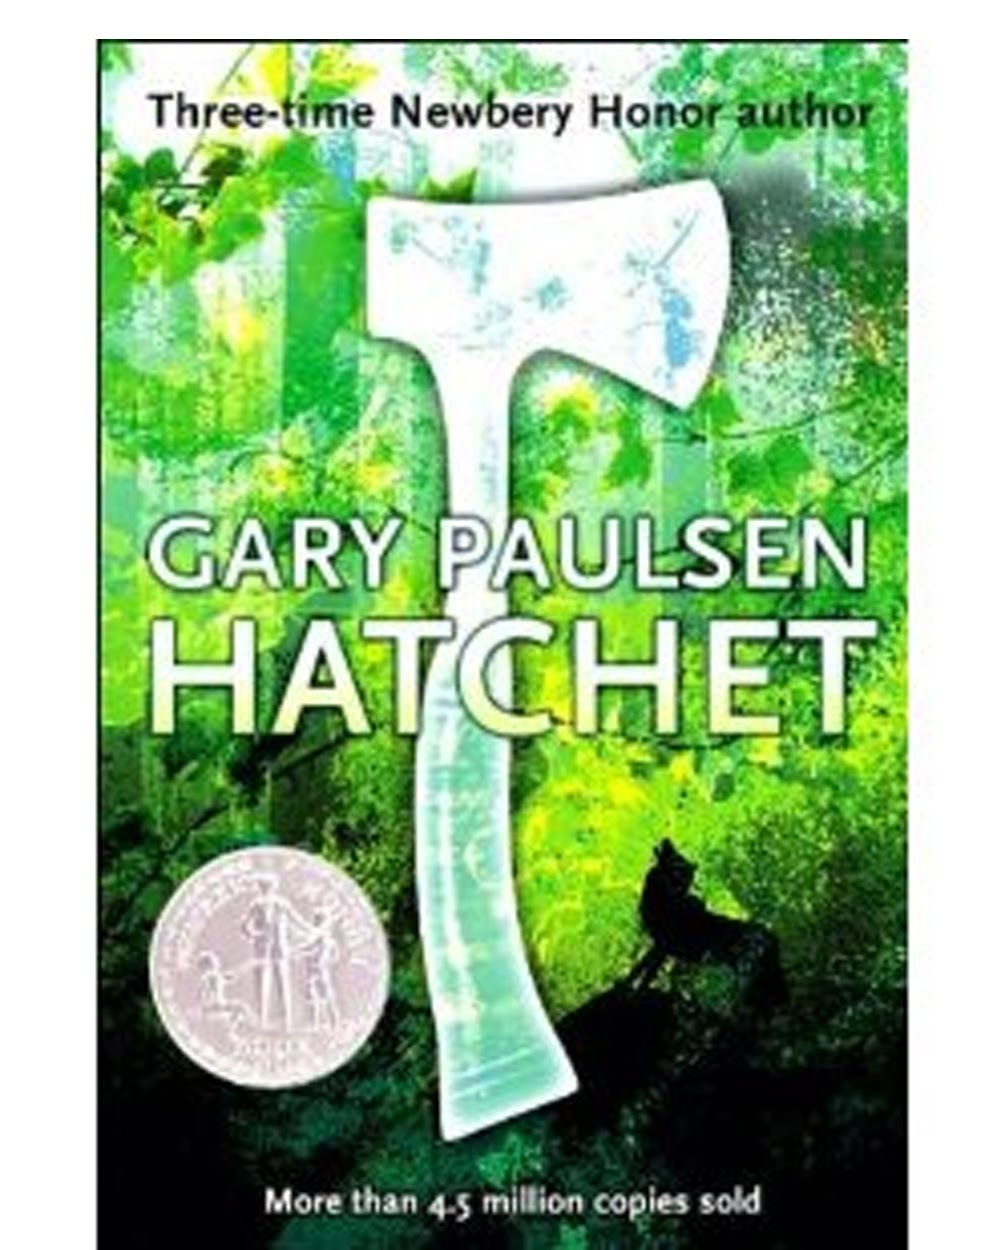 the story of brian robeson in gary paulsens hatchet Hatchet is an engrossing realistic fiction novel written by gary paulsen the story  focuses on thirteen year old brian robeson, a son of divorced.